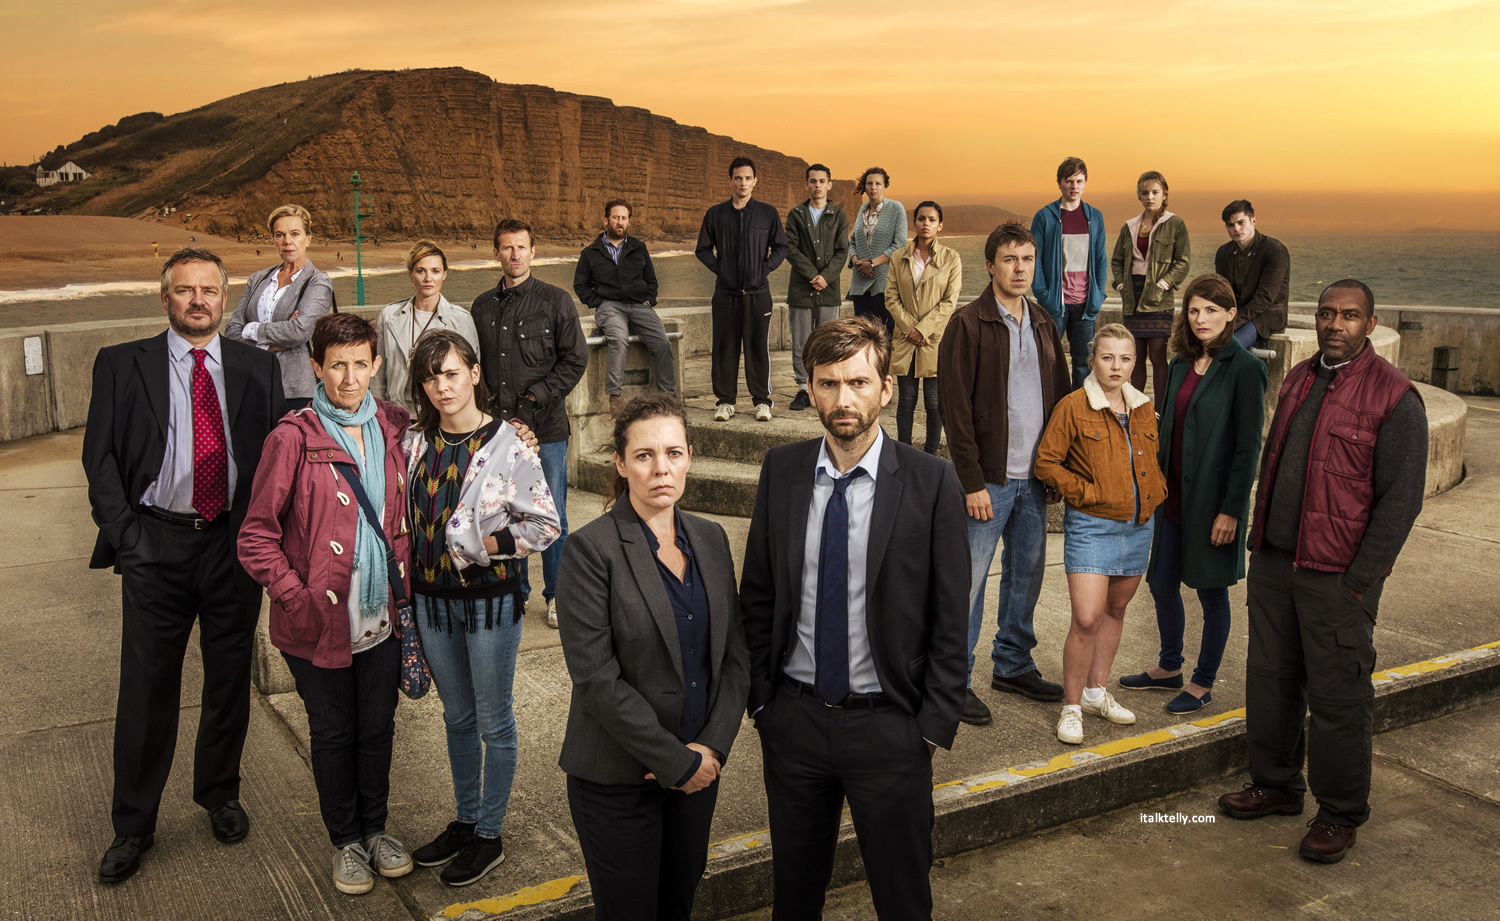 Broadchurch Series 3 - italktelly.com